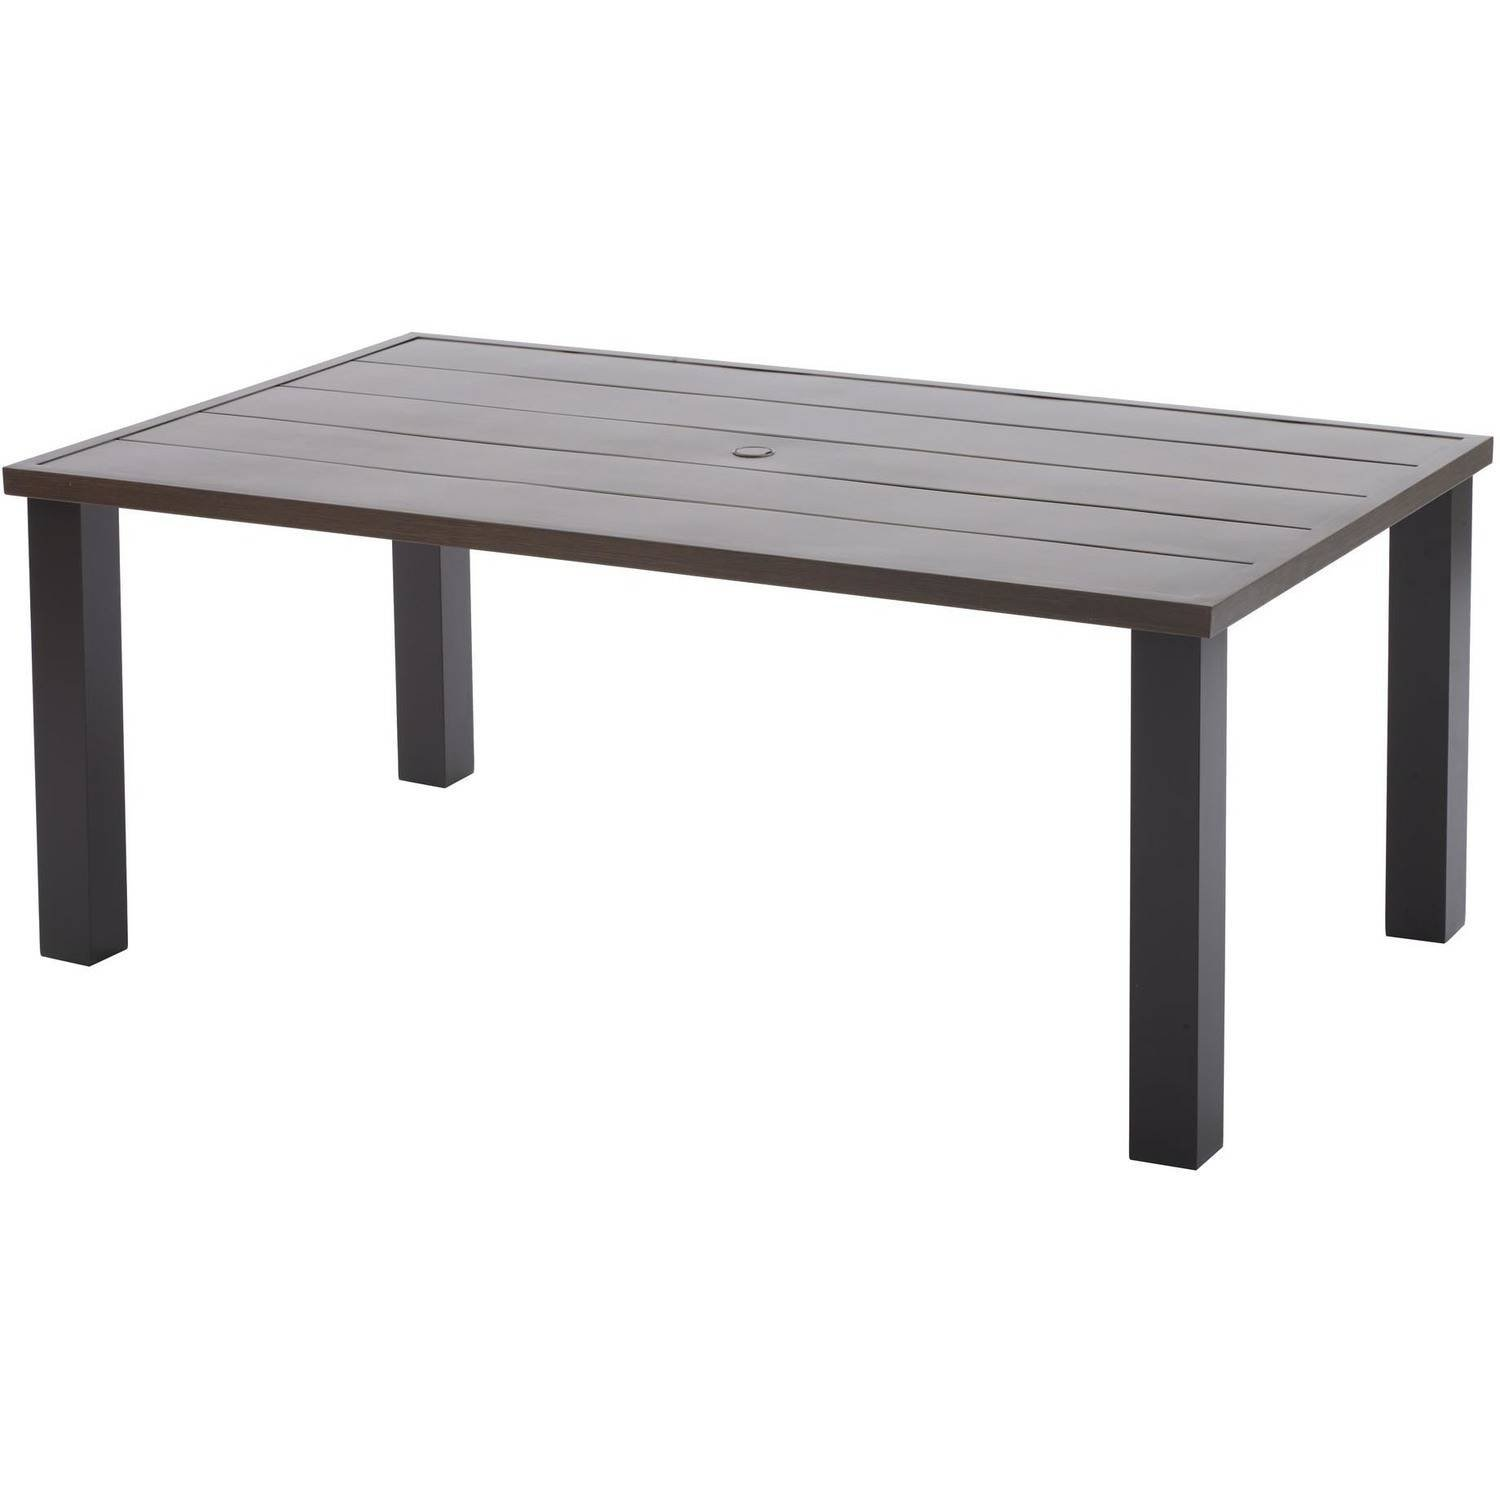 Better Homes and Gardens Camrose Farmhouse Mix and Match Steel Dining Table